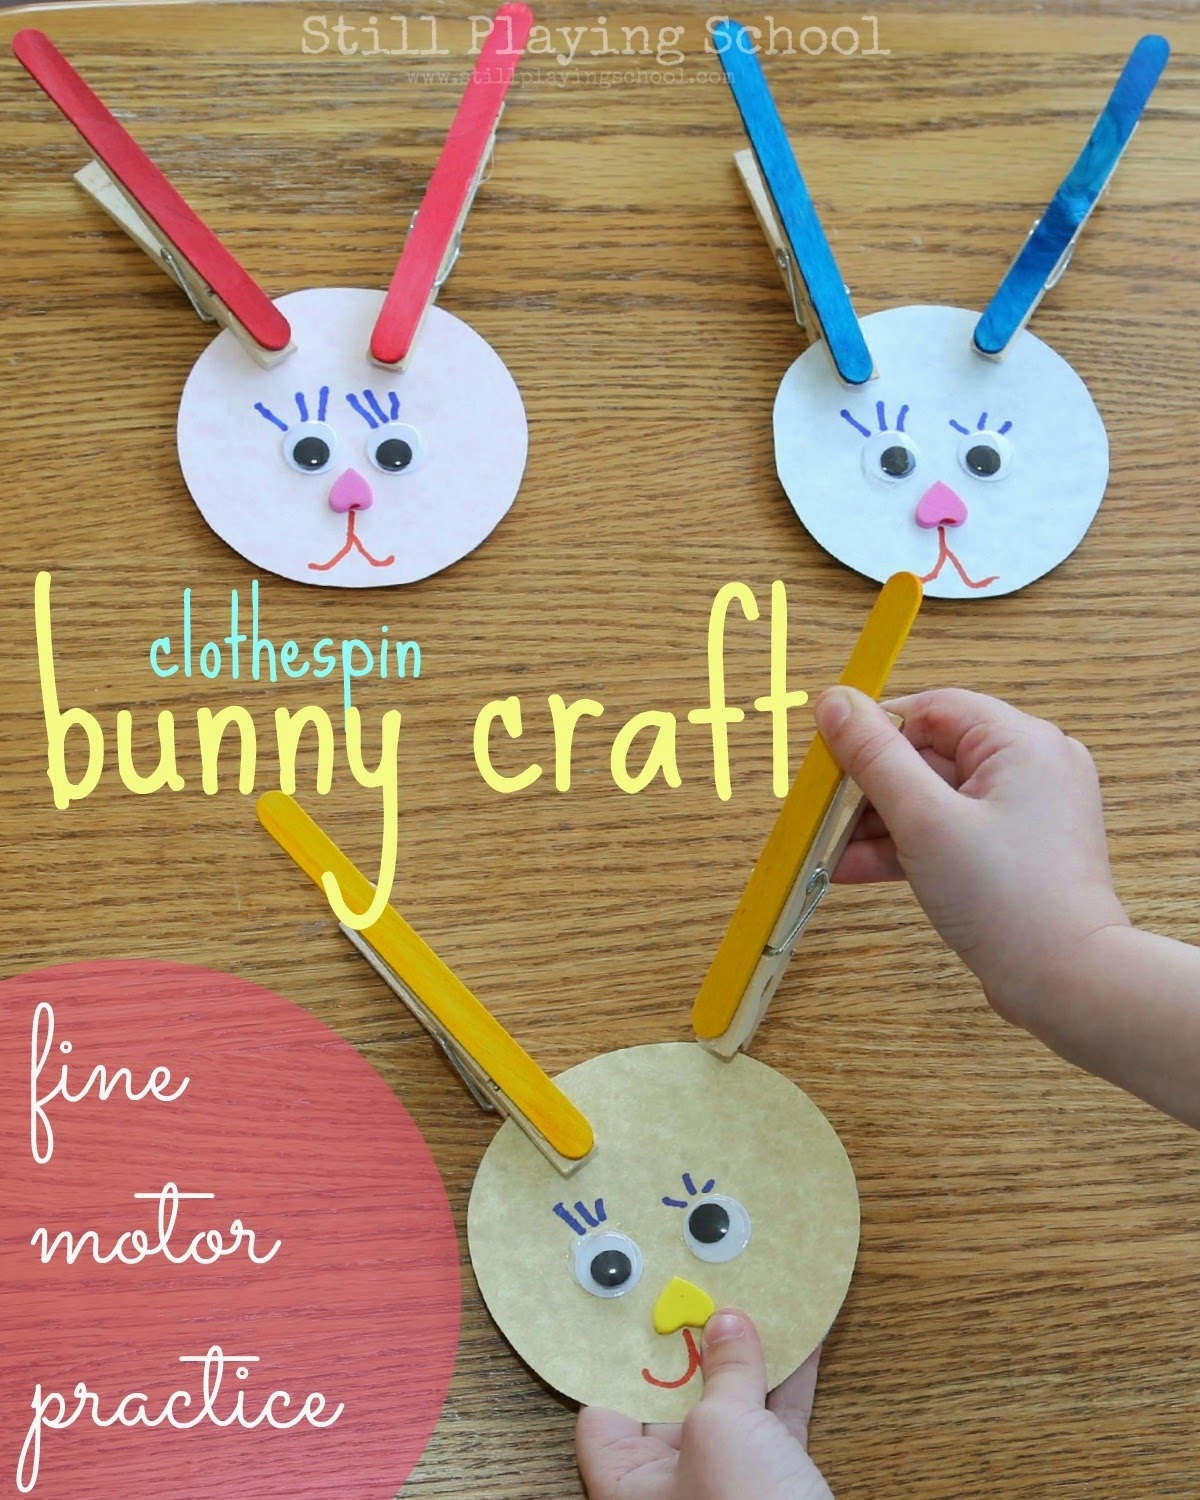 Wonderful Simple Craft Ideas For Kids Part - 9: Bunny-craft-clothespin